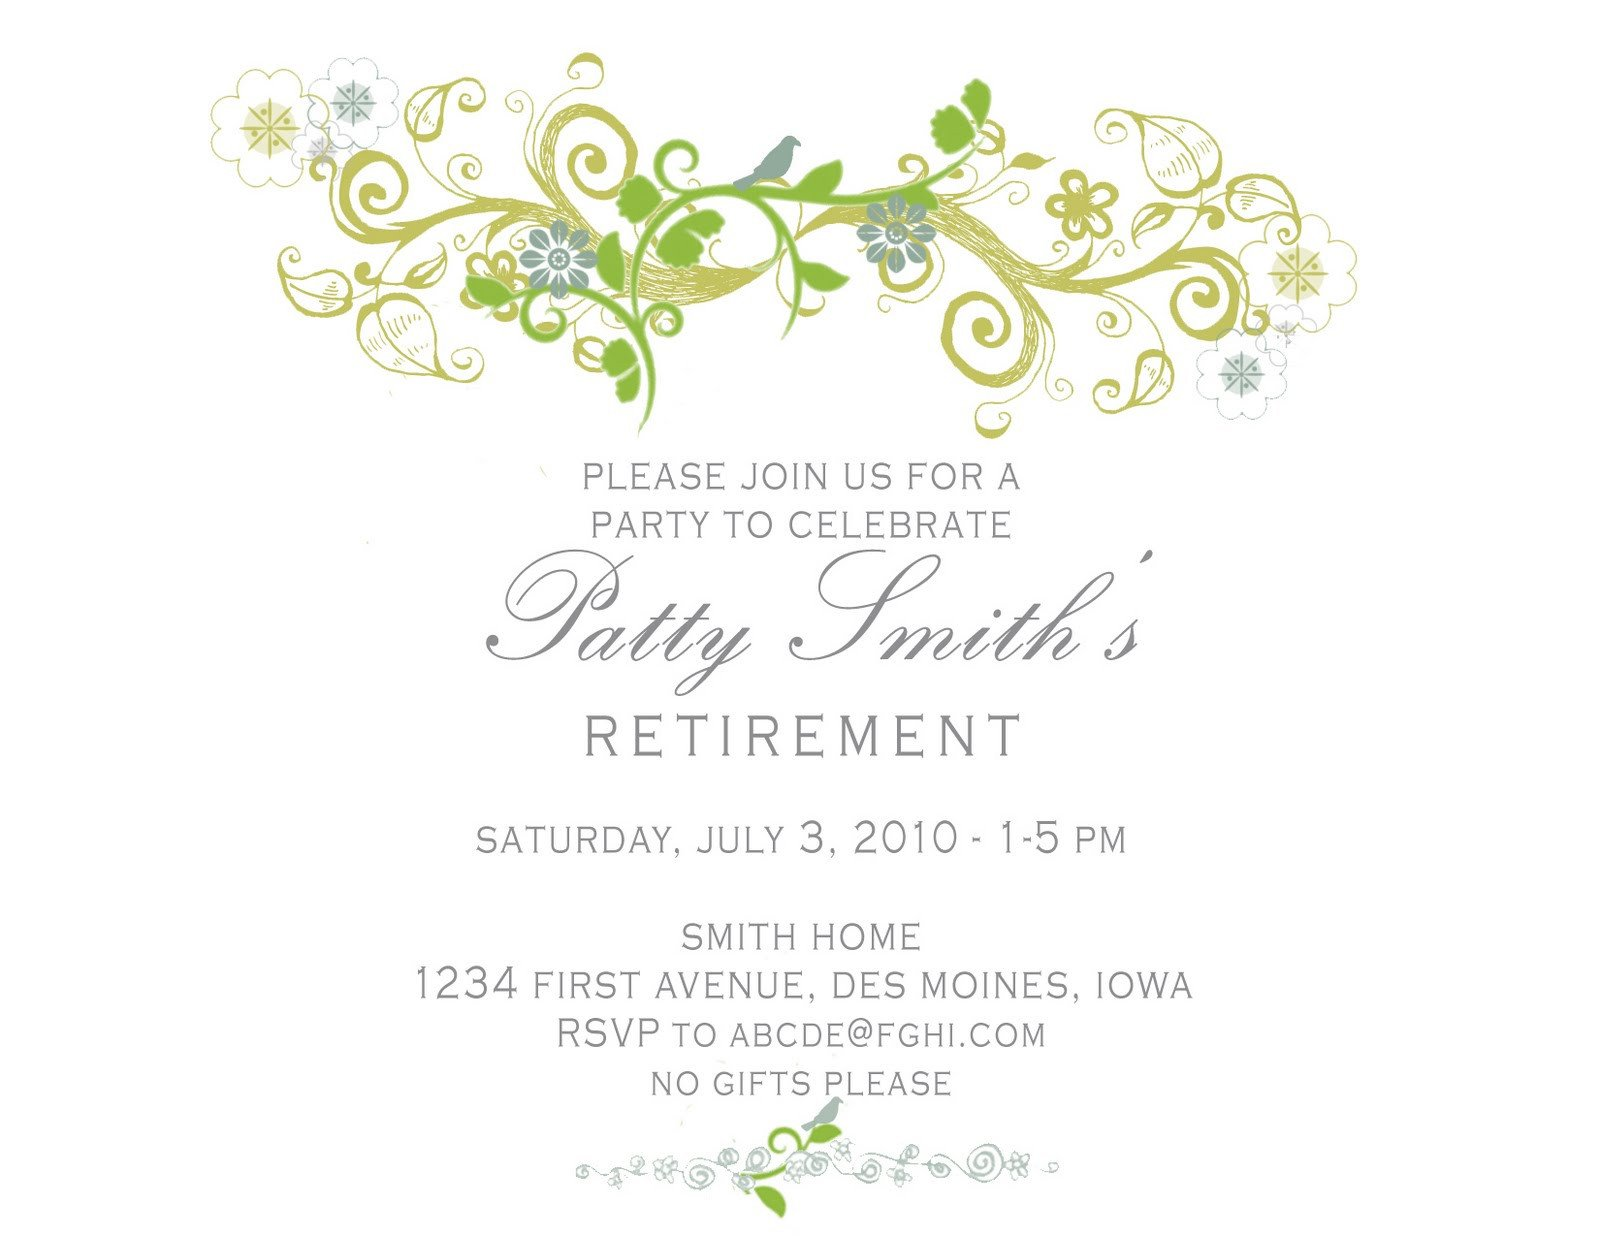 Retirement Party Invitations Template Idesign A Retirement Party Invitation